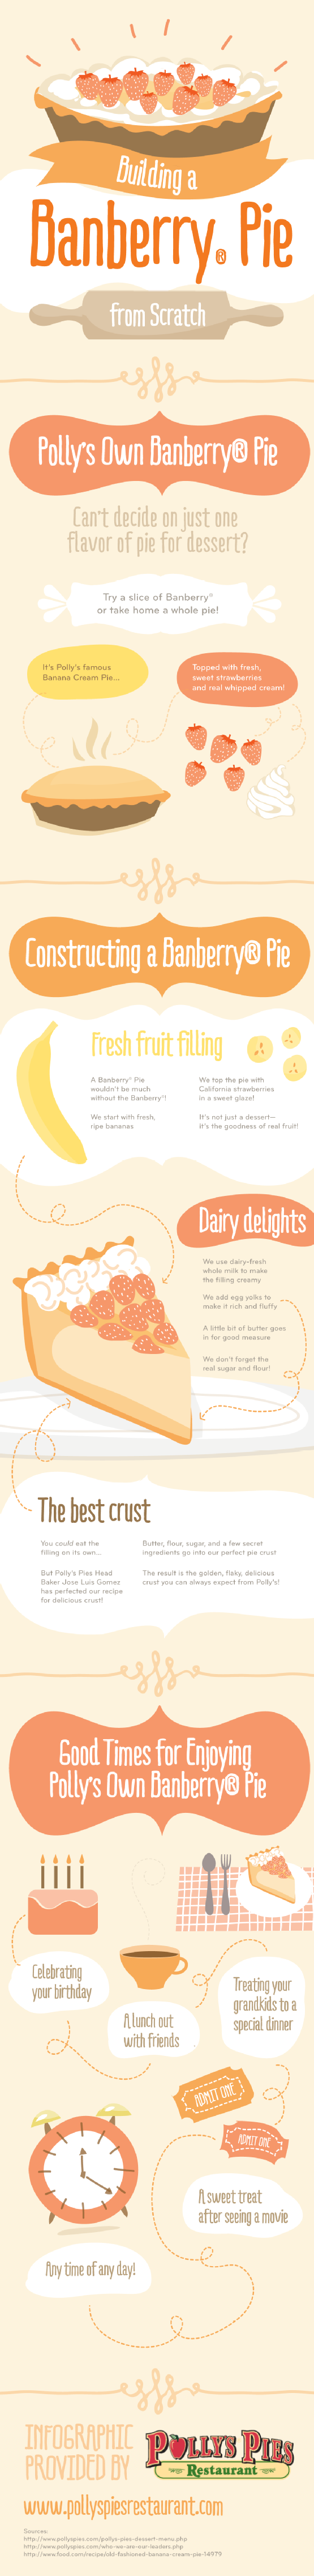 Infographic: How To Build A Banberry Pie from Scratch